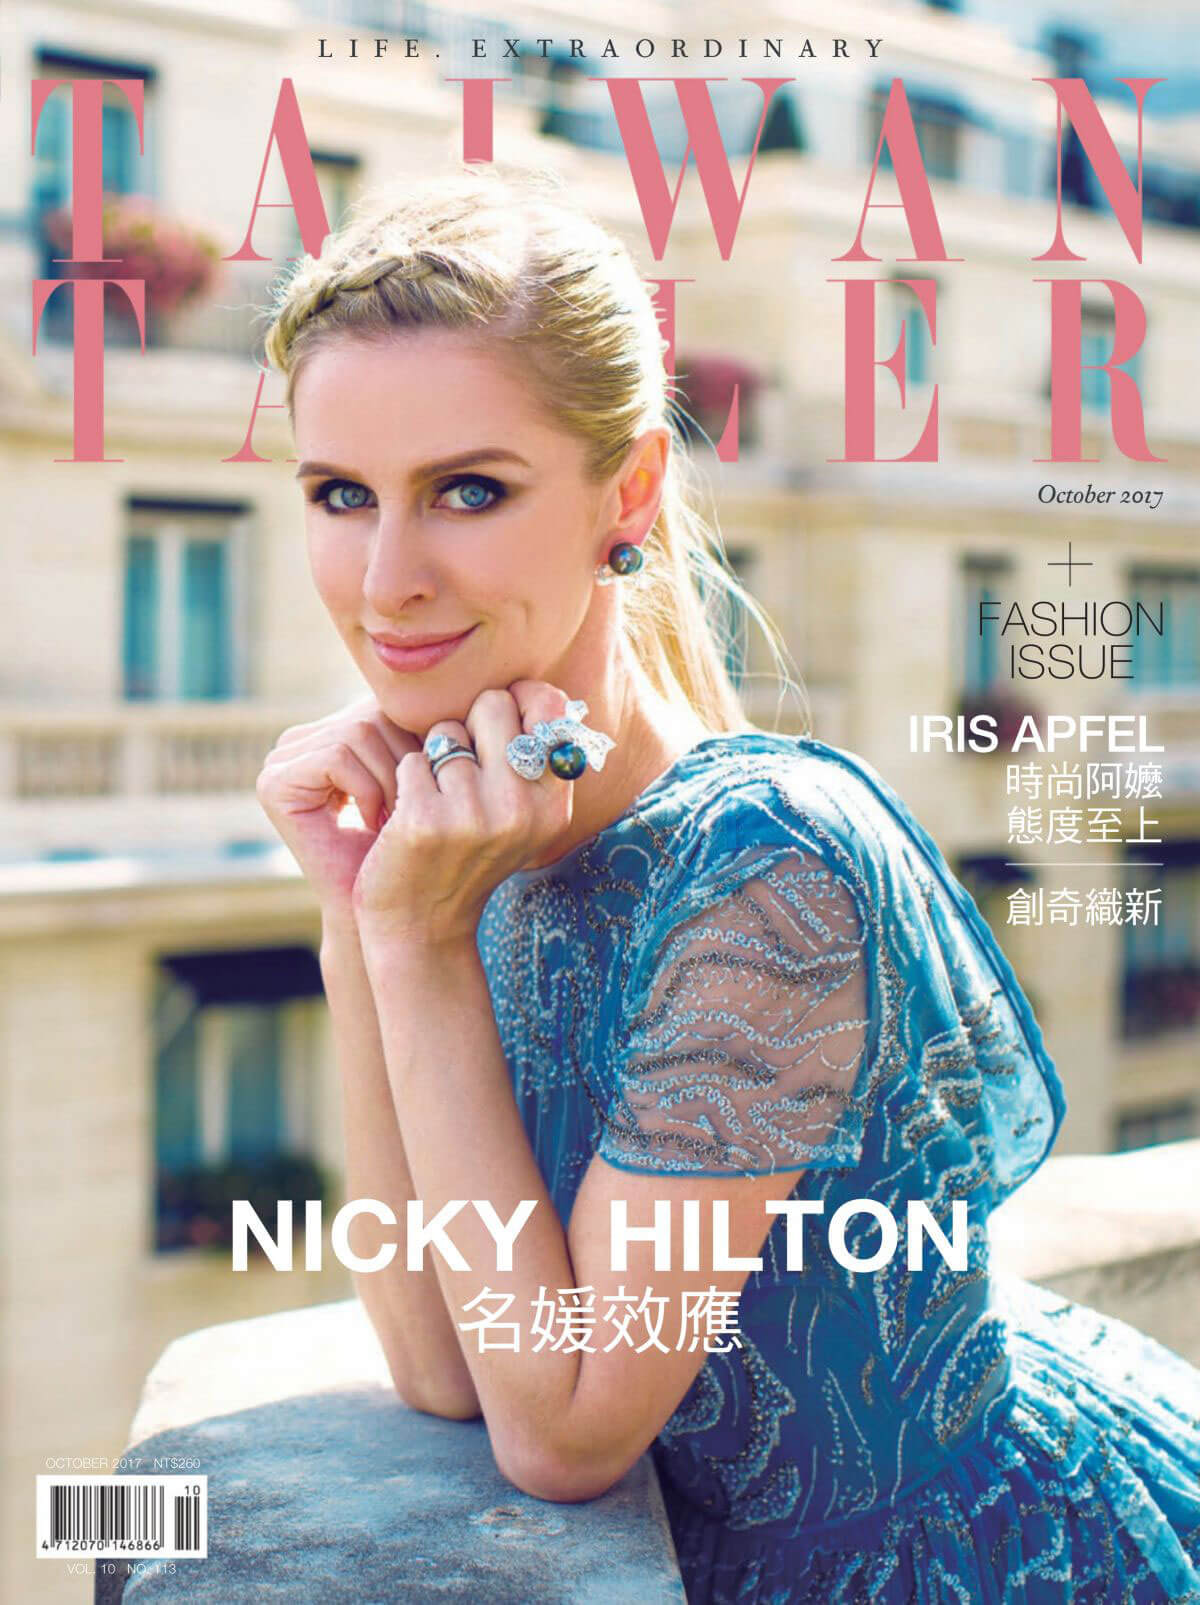 Nicky Hilton Poses in Tatler Magazine, Taiwan October 2017 Issue